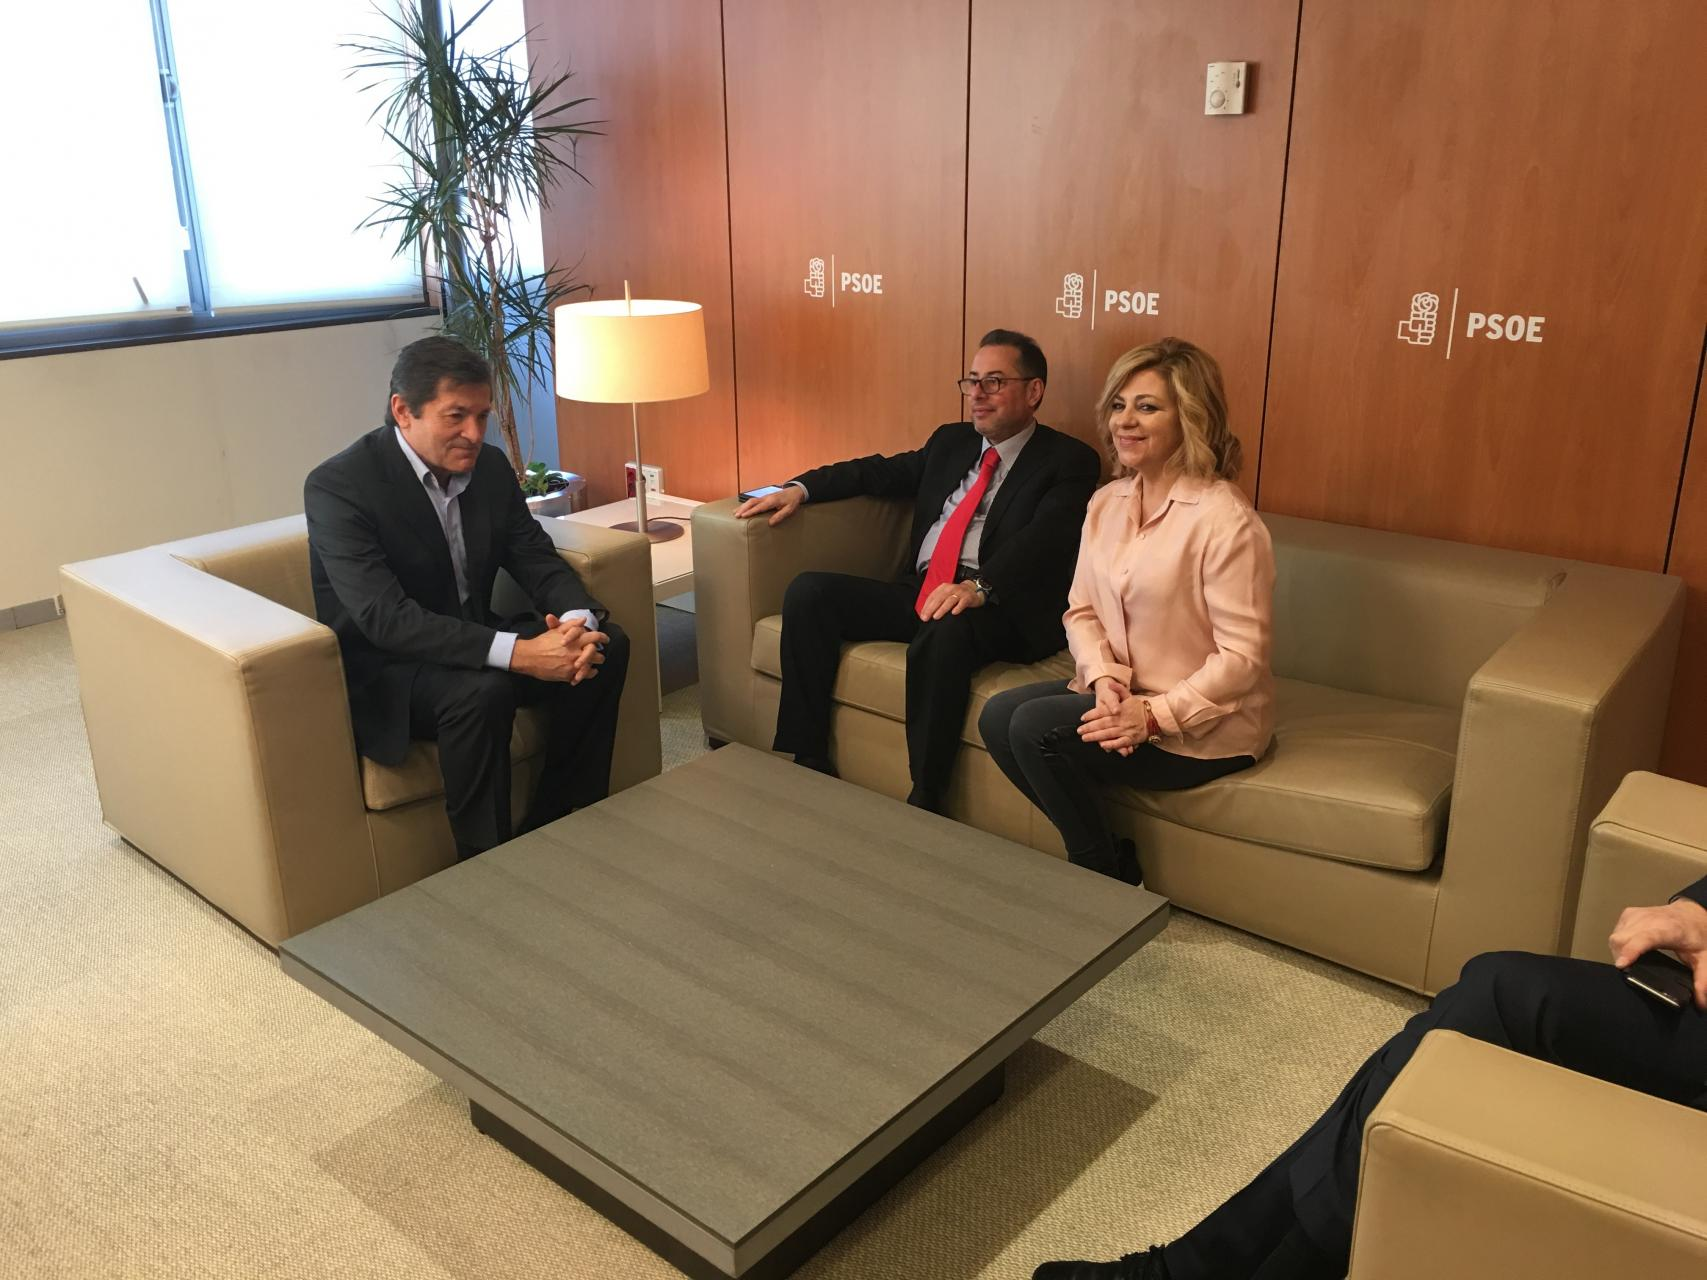 Pittella and Valenciano meet Fernandez (PSOE)